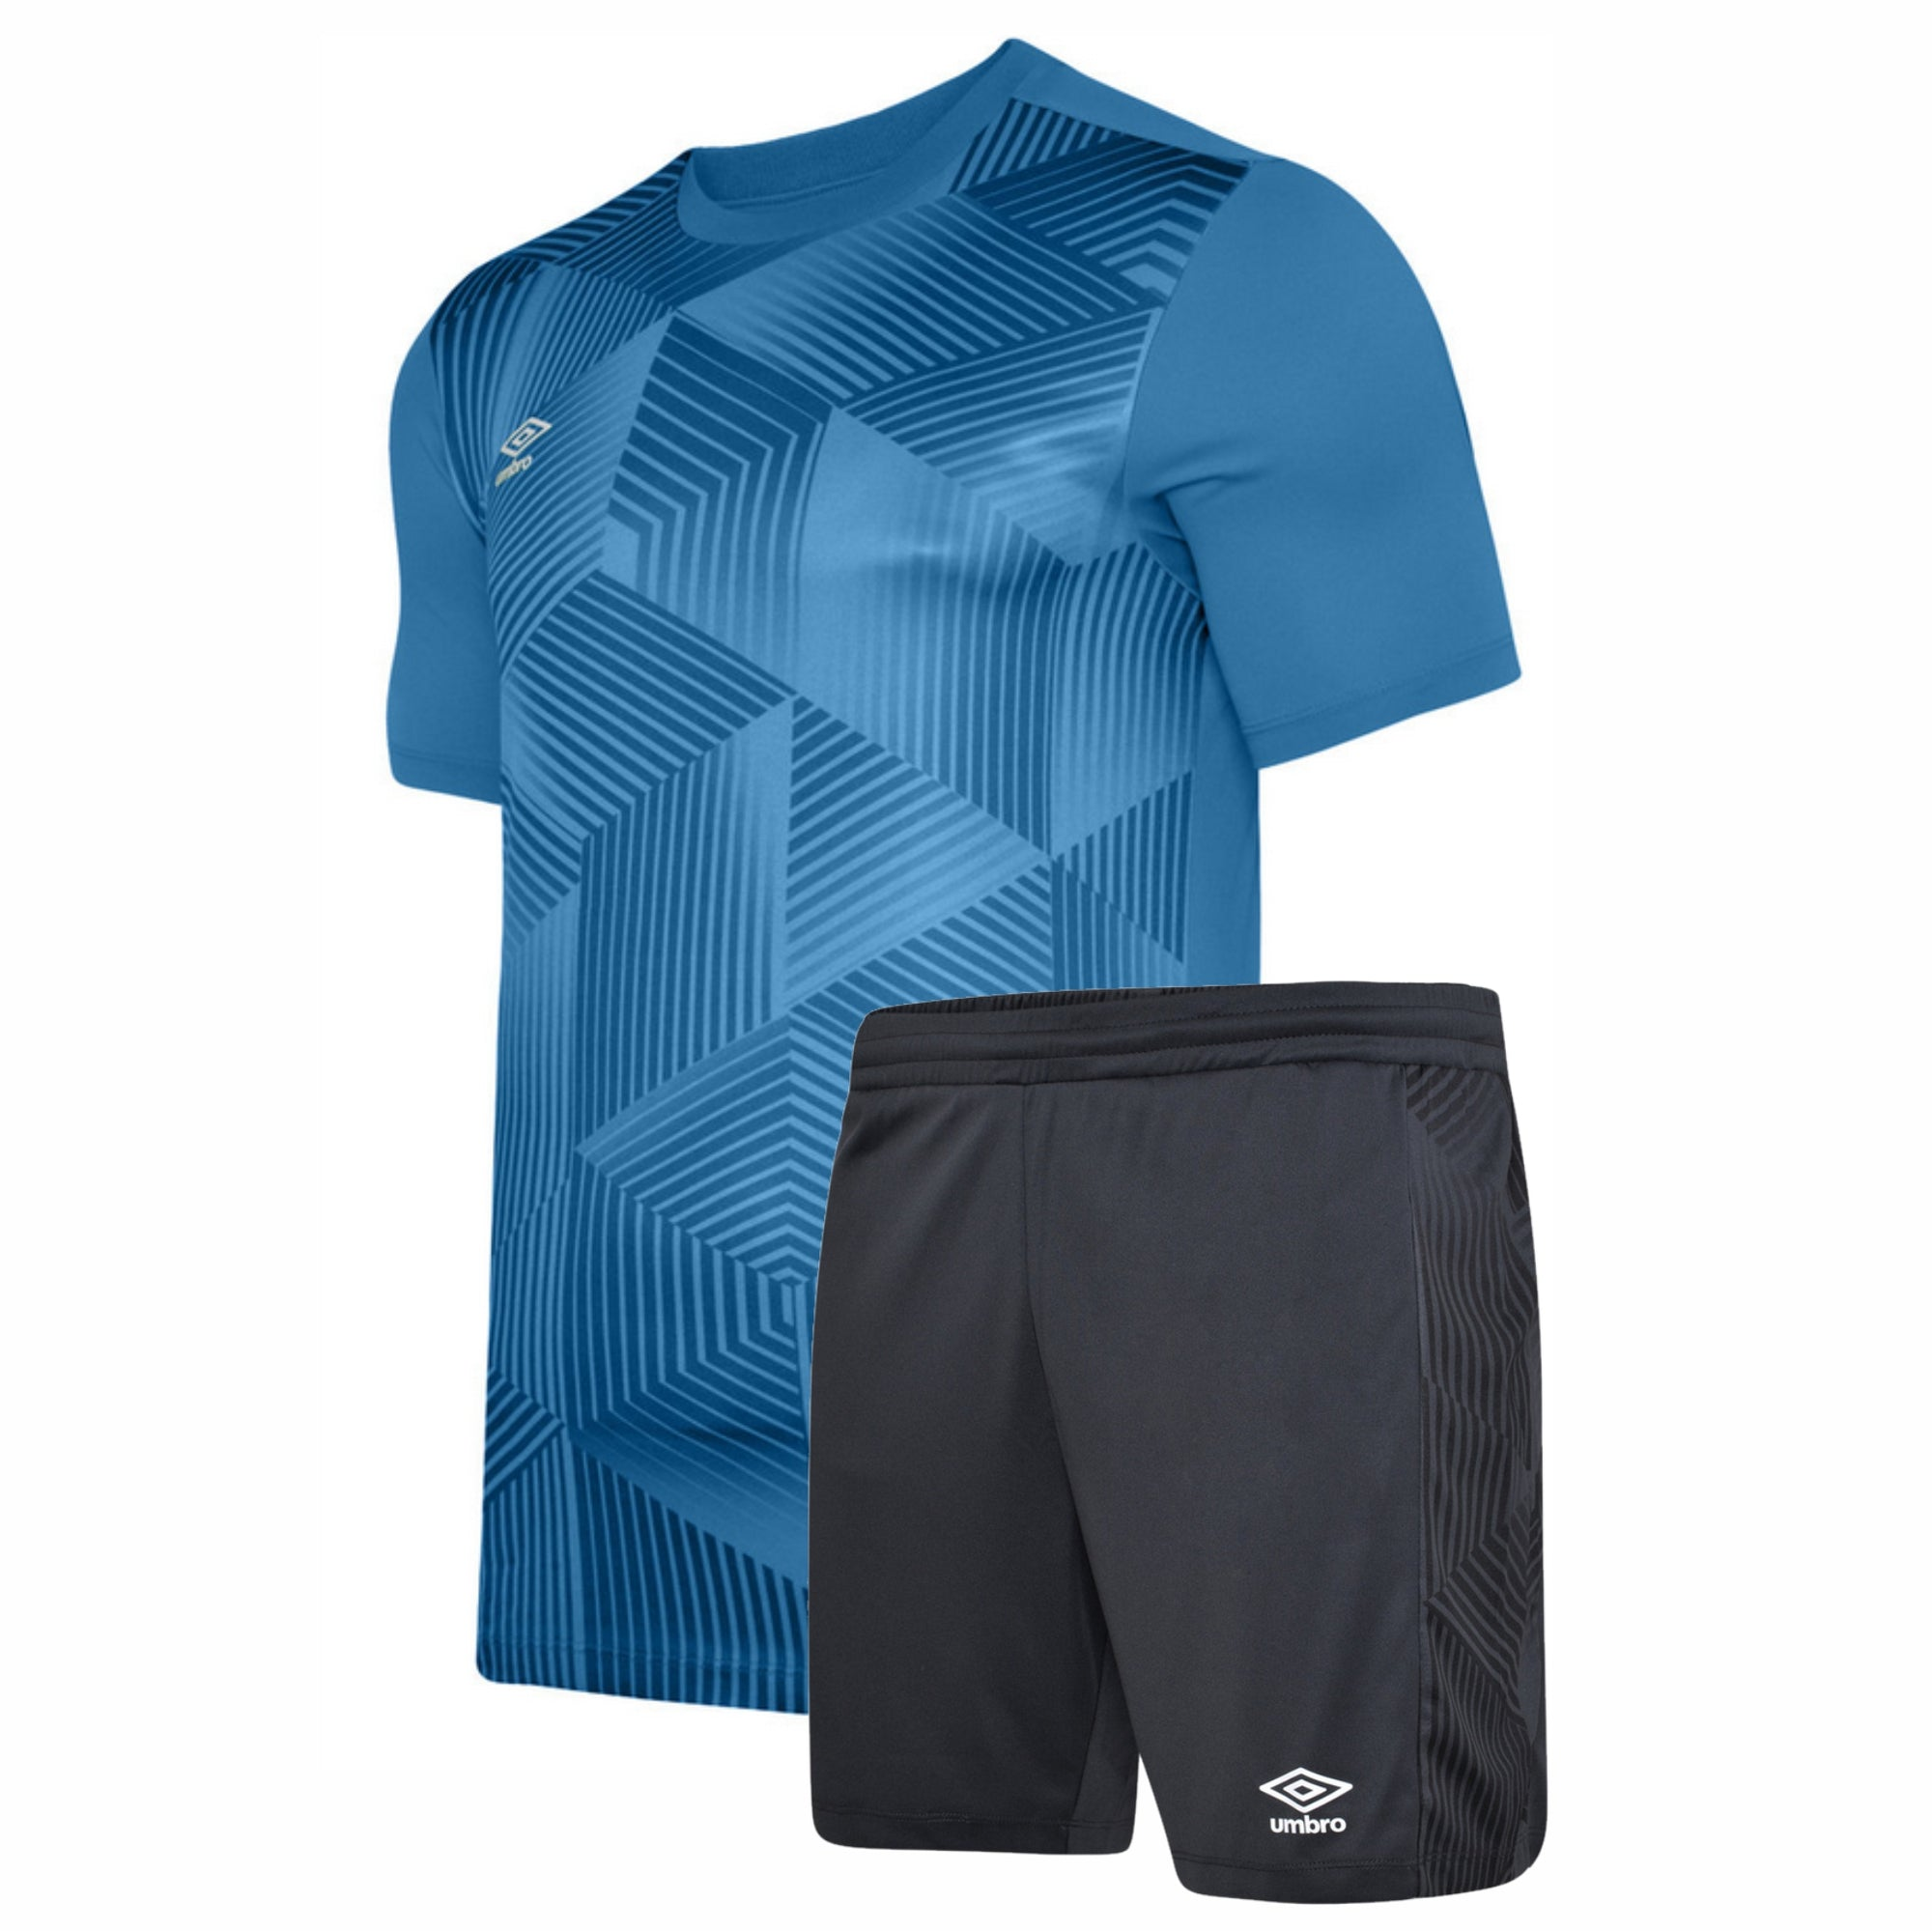 Umbro Maxium Kit Set - Blue Jewel/Black